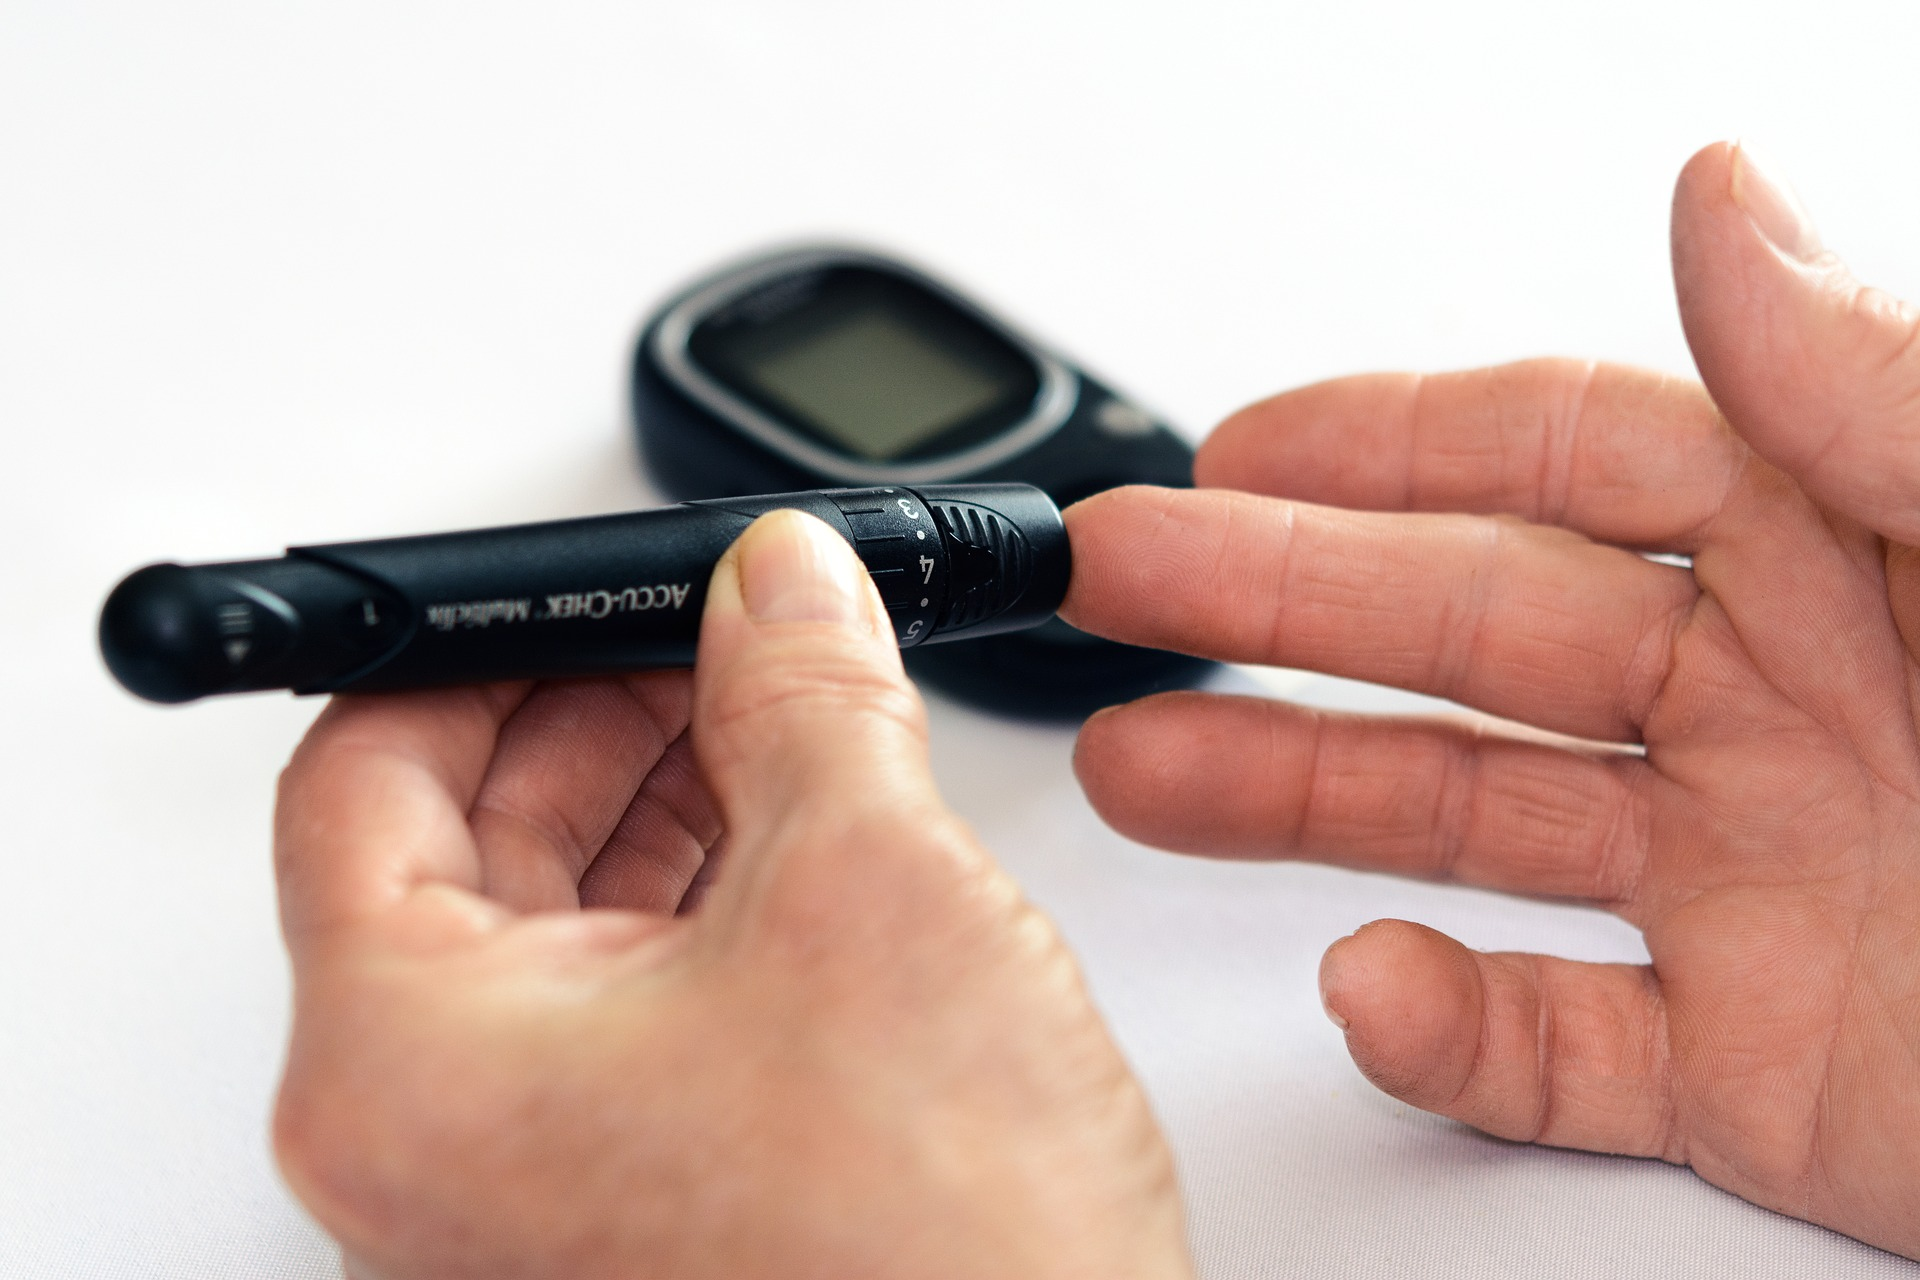 Self glucose monitoring device.